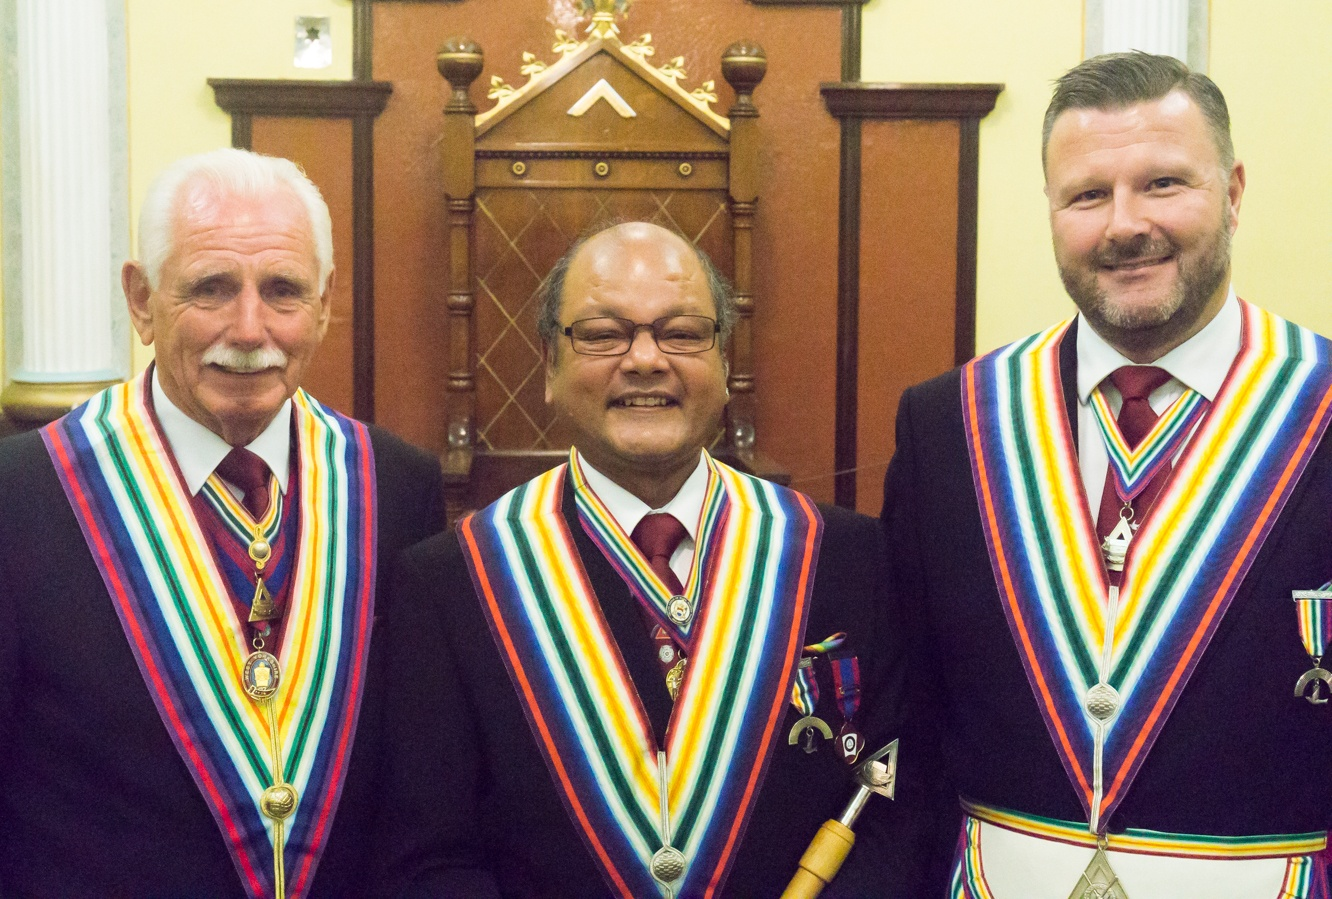 A new name in the frame at the Installation at Dewsbury Lodge of RAM No.641.